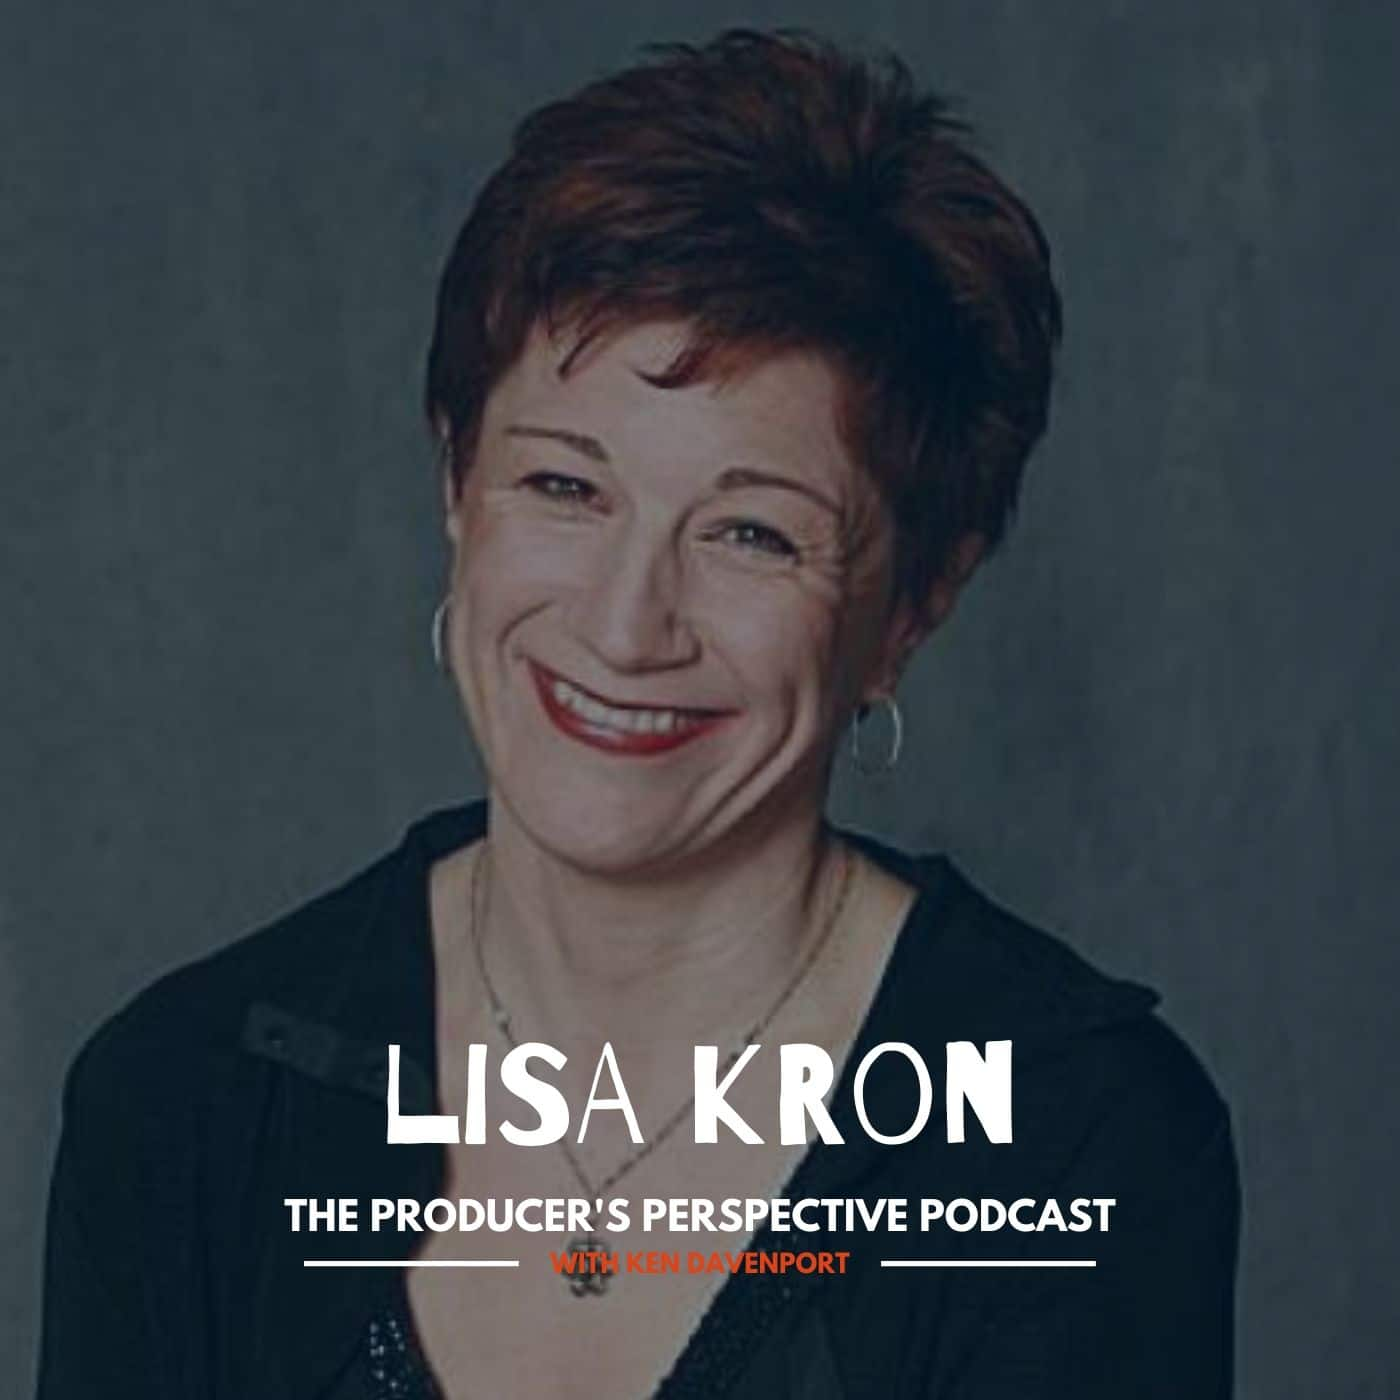 Ken Davenport's The Producer's Perspective Podcast Episode 154 - Lisa Kron